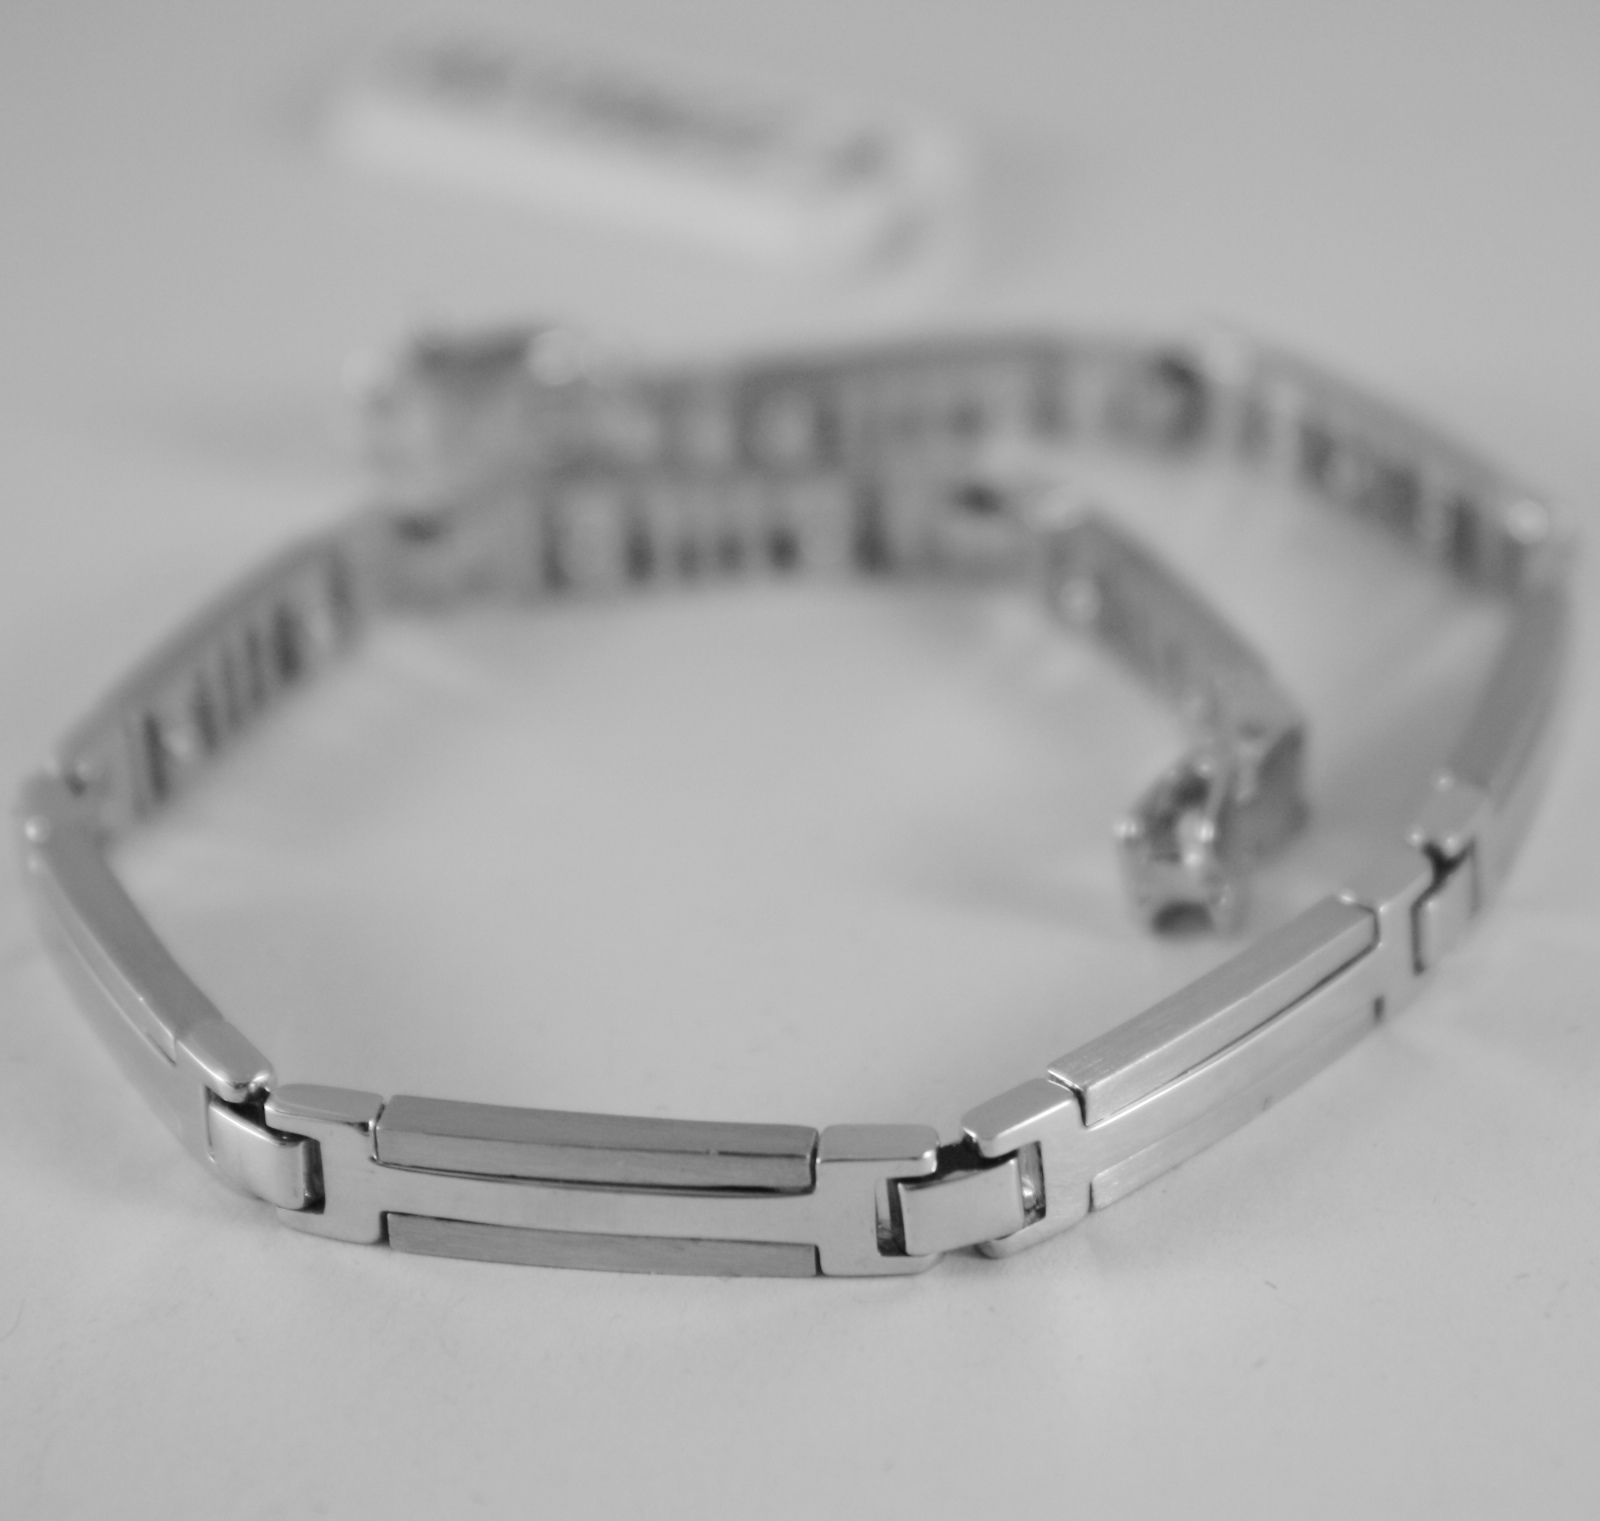 SOLID 18K WHITE GOLD BRACELET SQUARE 5 MM MESH, SATIN, 21 CM, MADE IN ITALY